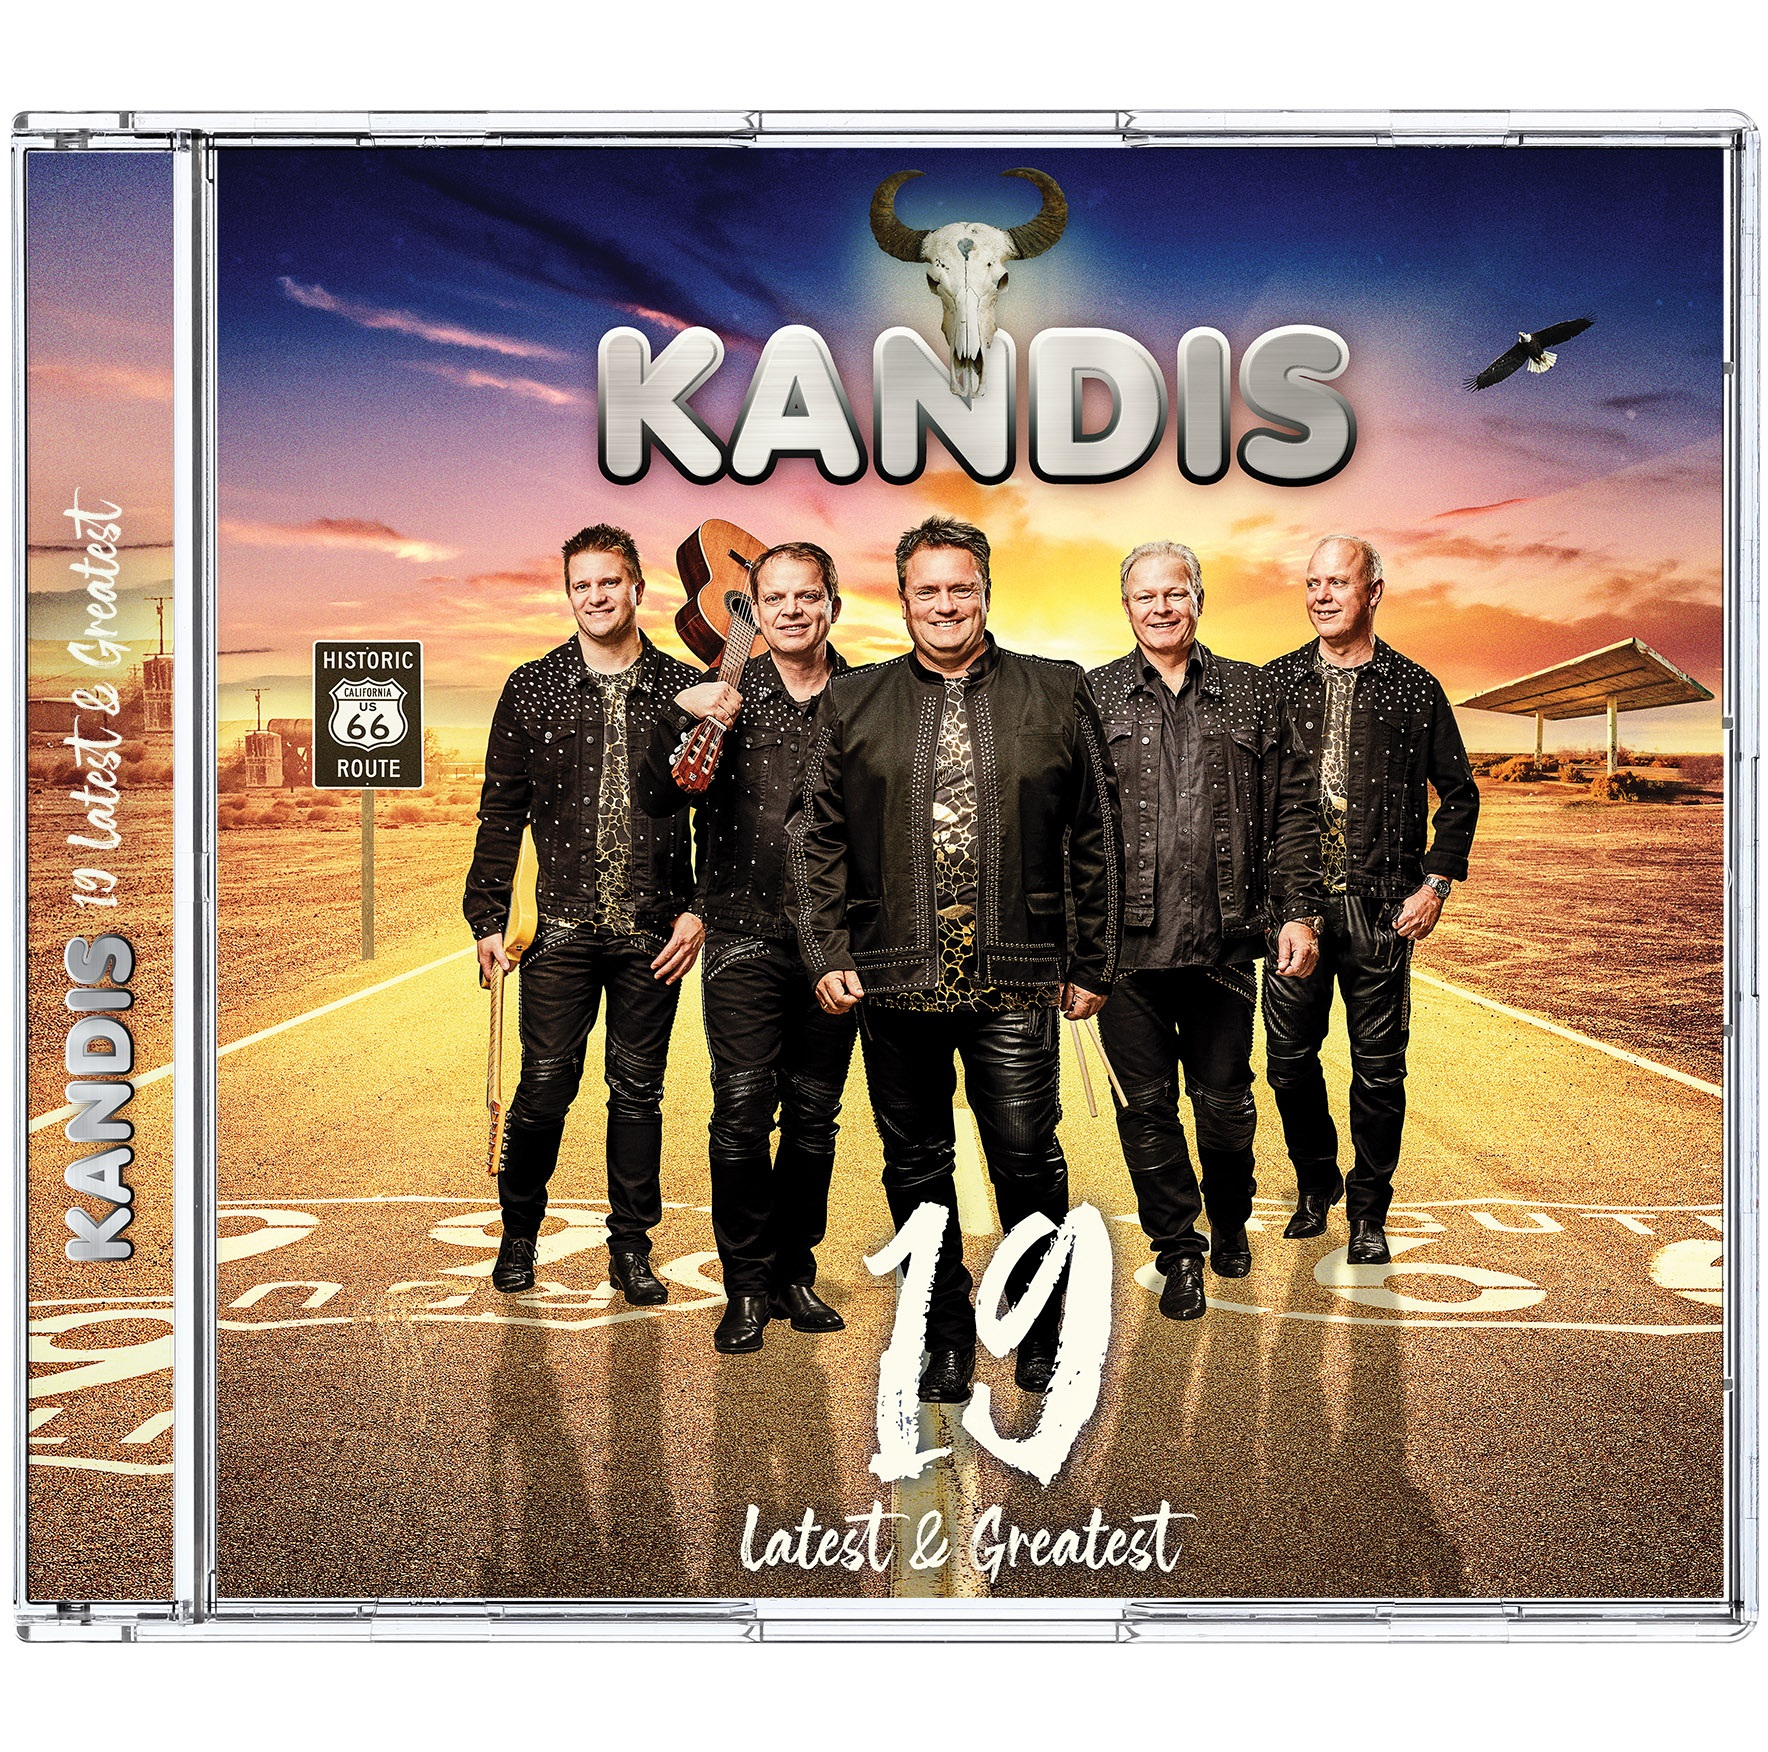 19 - Latest & Greatest - Kandis - Musik -  - 5711053021458 - 15/11-2019